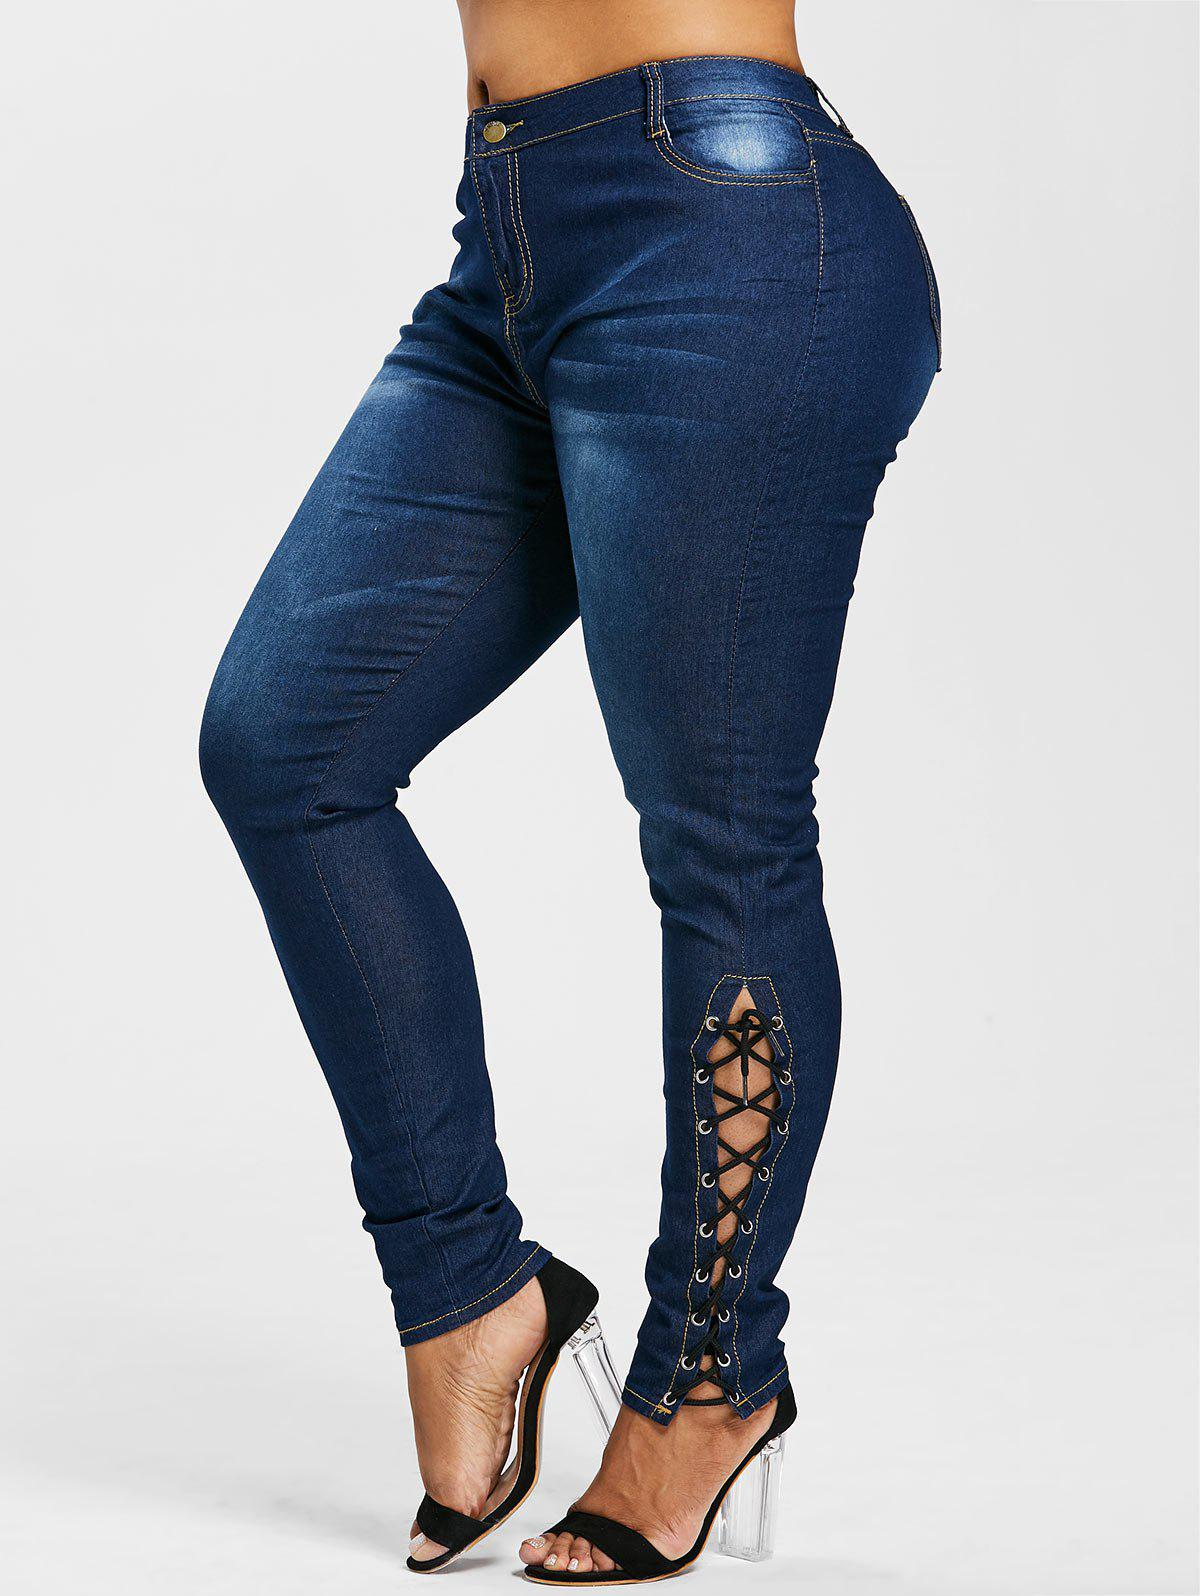 adbdd46dfd86d 31% OFF] Plus Size Side Lace Up Zipper Fly Jeans | Rosegal